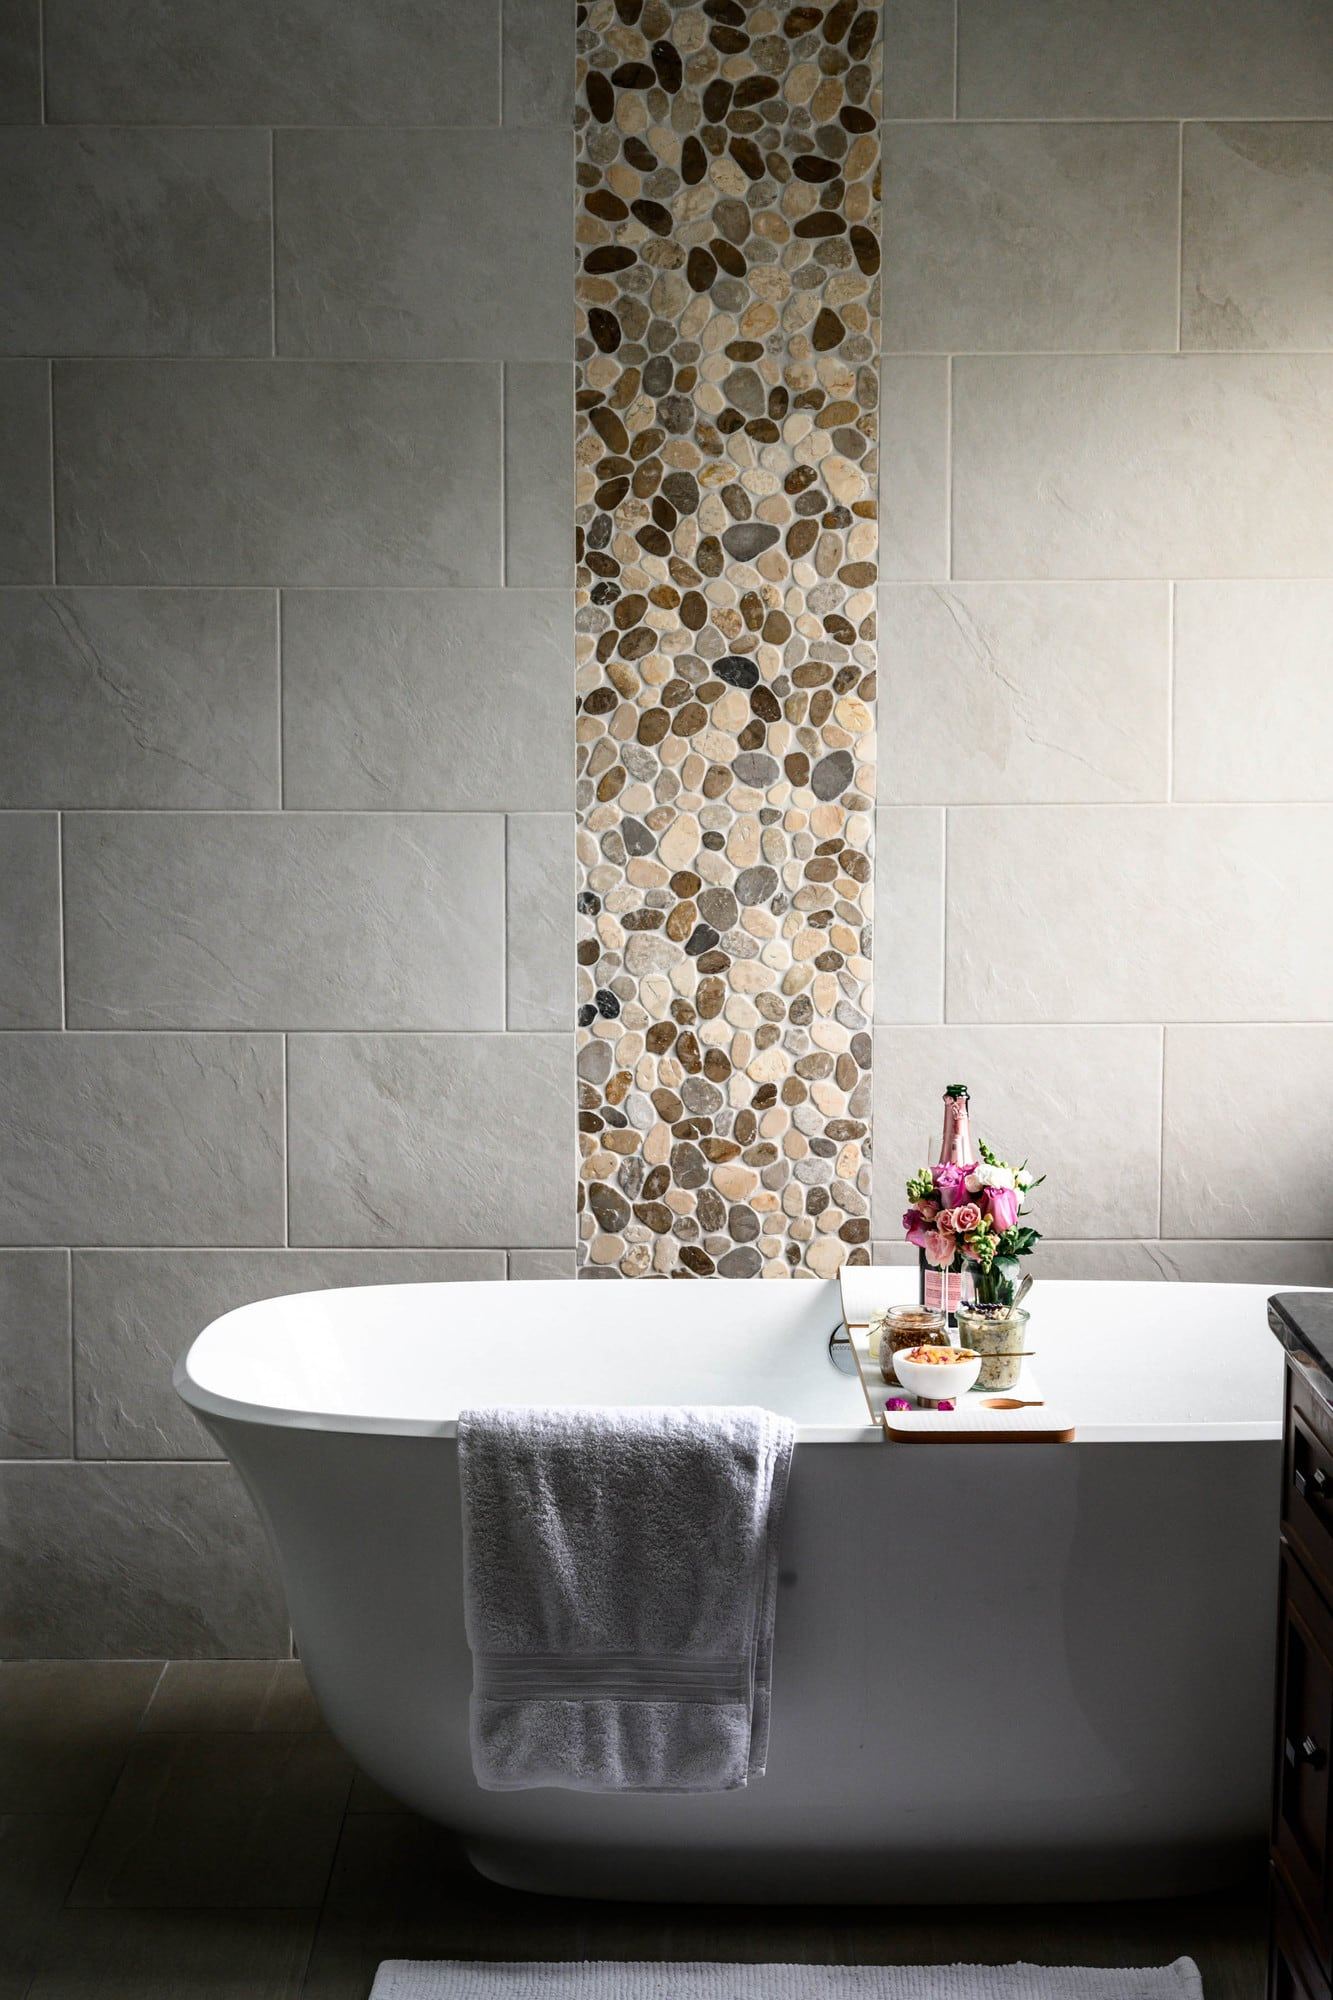 Side view of relaxing, beautiful bath tub with body scrubs, champagne, flowers and candles